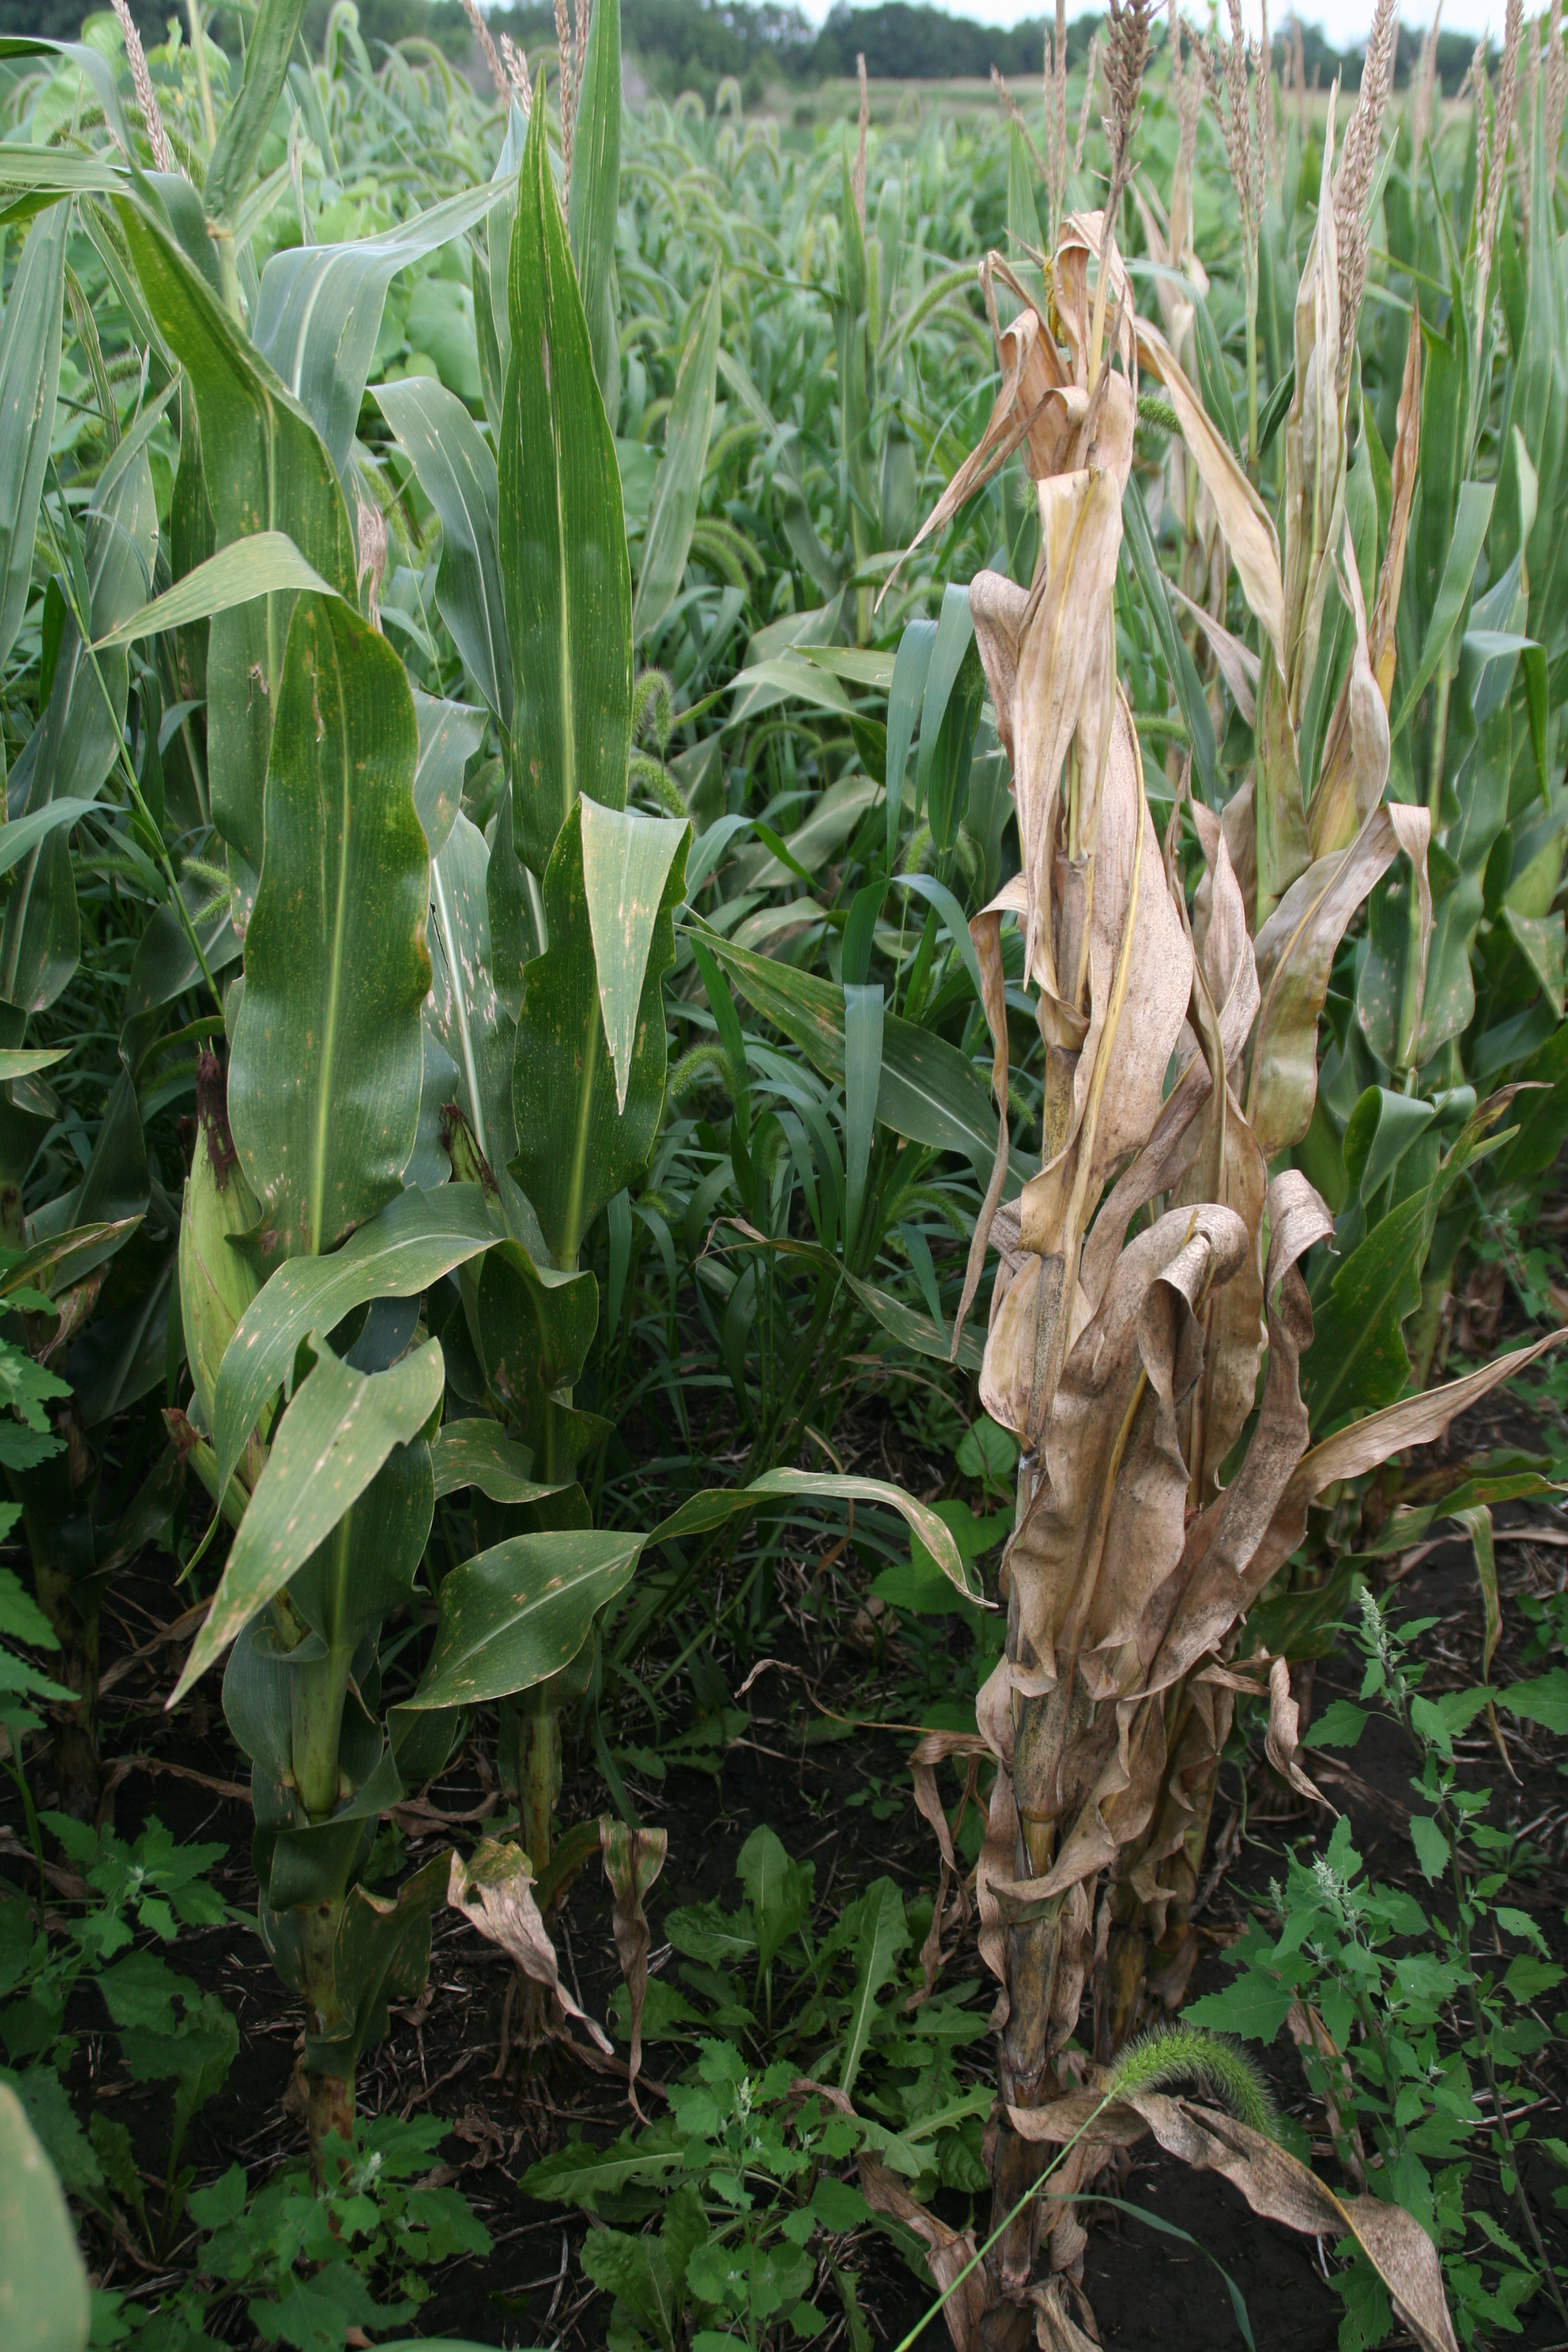 Plant death due to bacterial stalk rot.